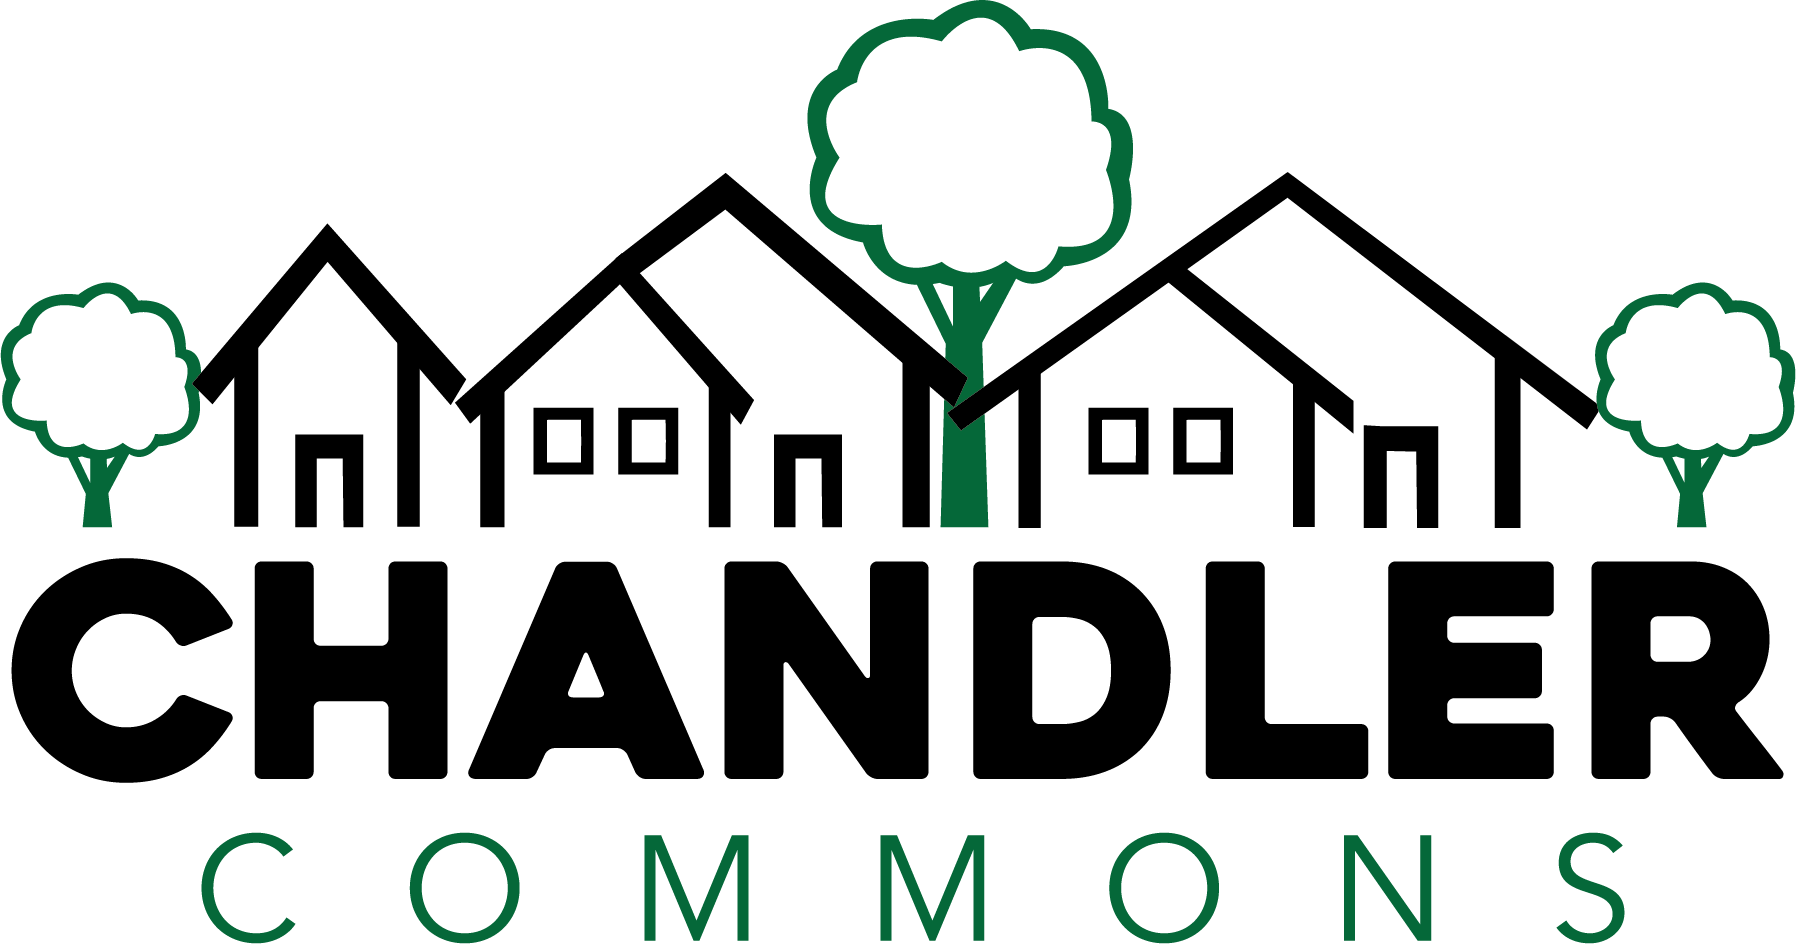 Chandler+Commons+Logo.png